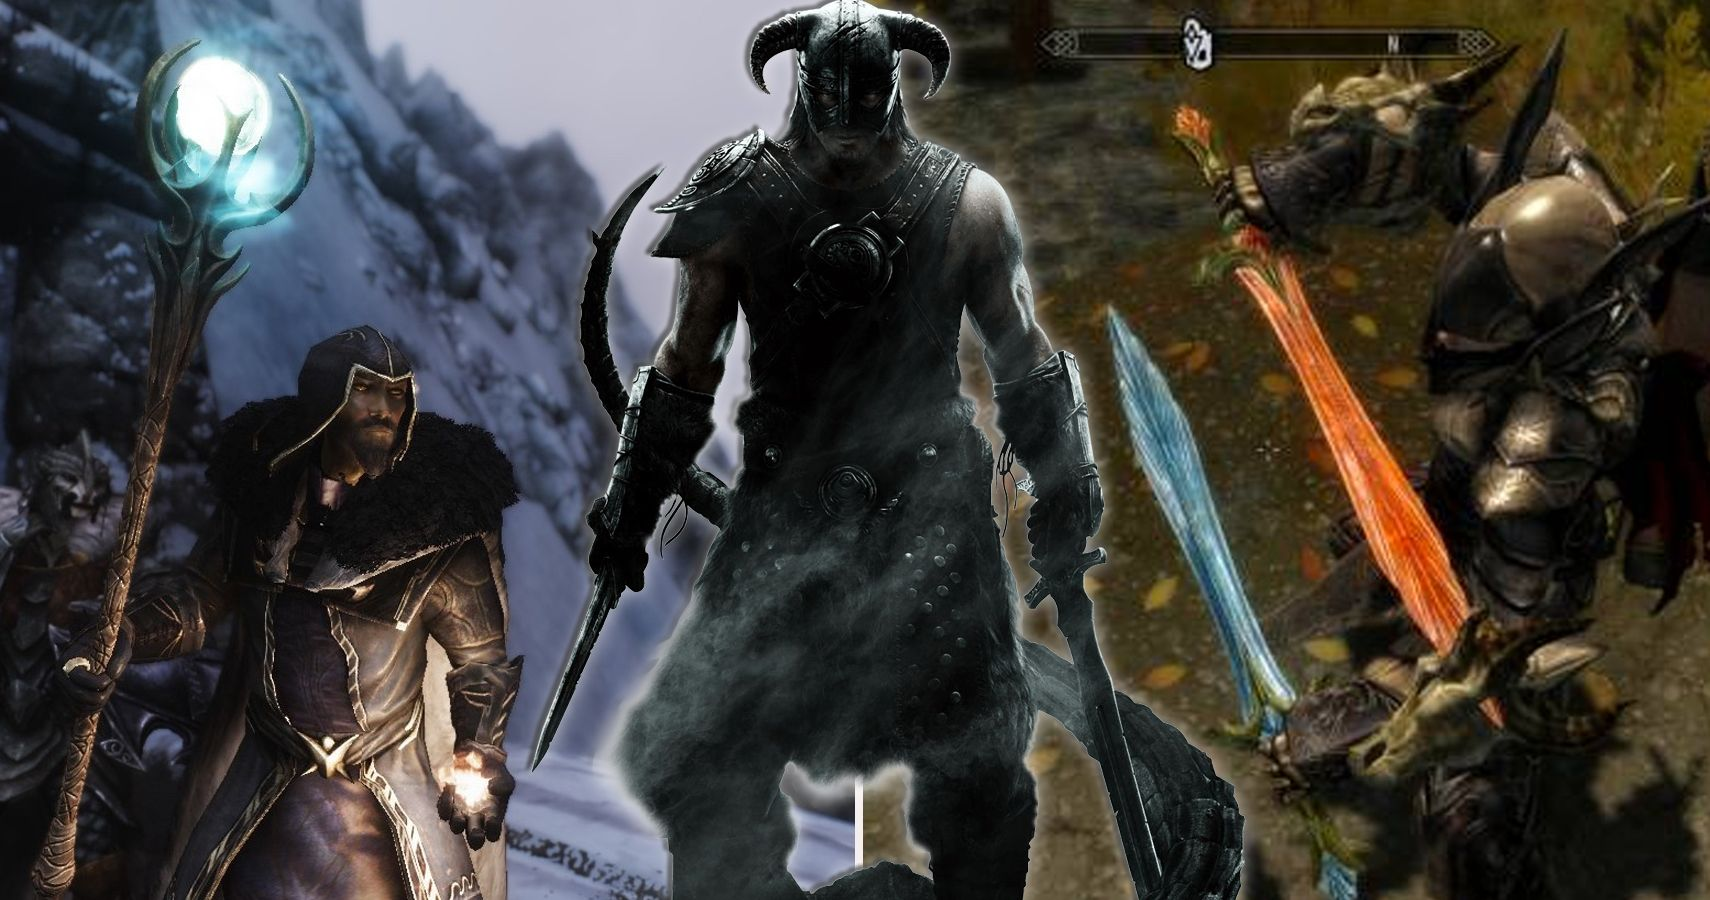 Skyrim: 25 Best Items Every Player Needs (And Where To Find